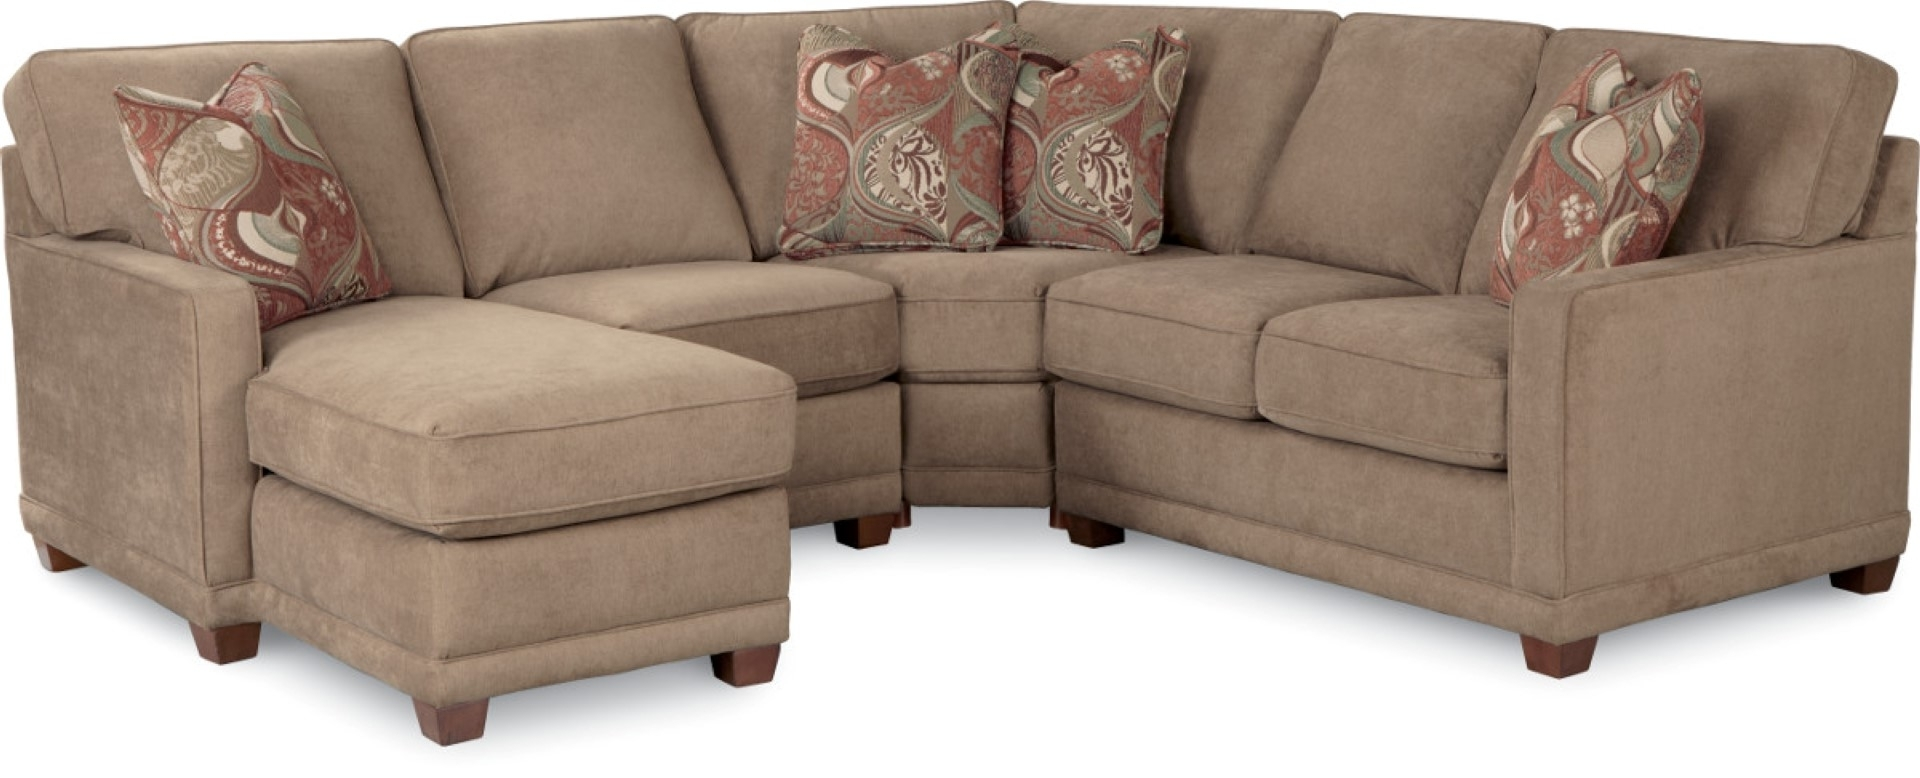 Best And Newest Sectional Sofas At Bad Boy With Regard To Kennedy Sectional Sofa – Town & Country Furniture (View 1 of 20)